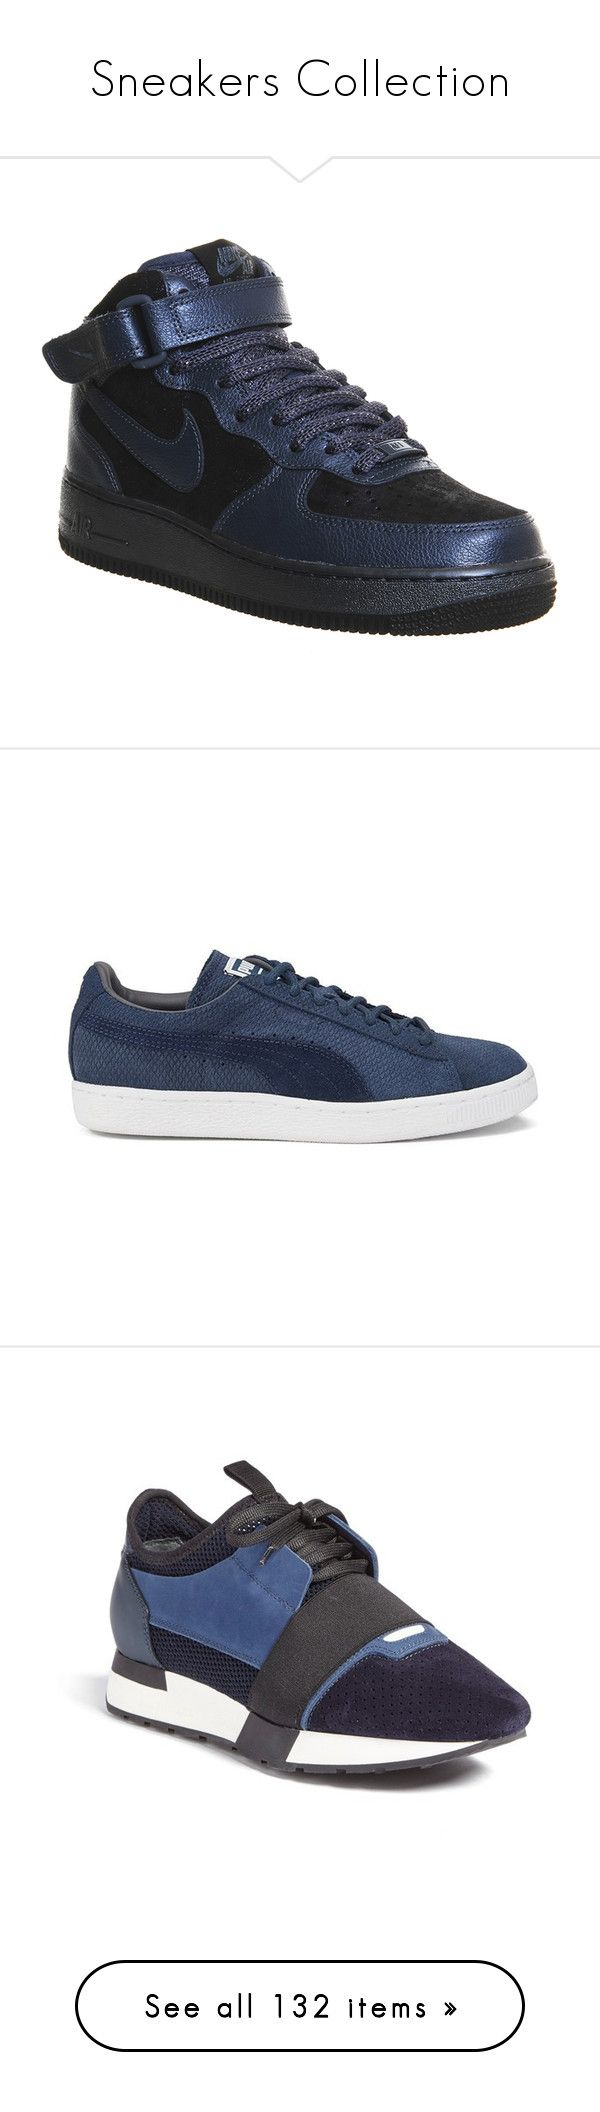 """""""Sneakers Collection"""" by tamara-40 ❤ liked on Polyvore featuring sneakers, 2015, shoes, cat footwear, puma sneakers, cat sneakers, grip trainer, suede lace up shoes, tory navy and lace up sneakers"""